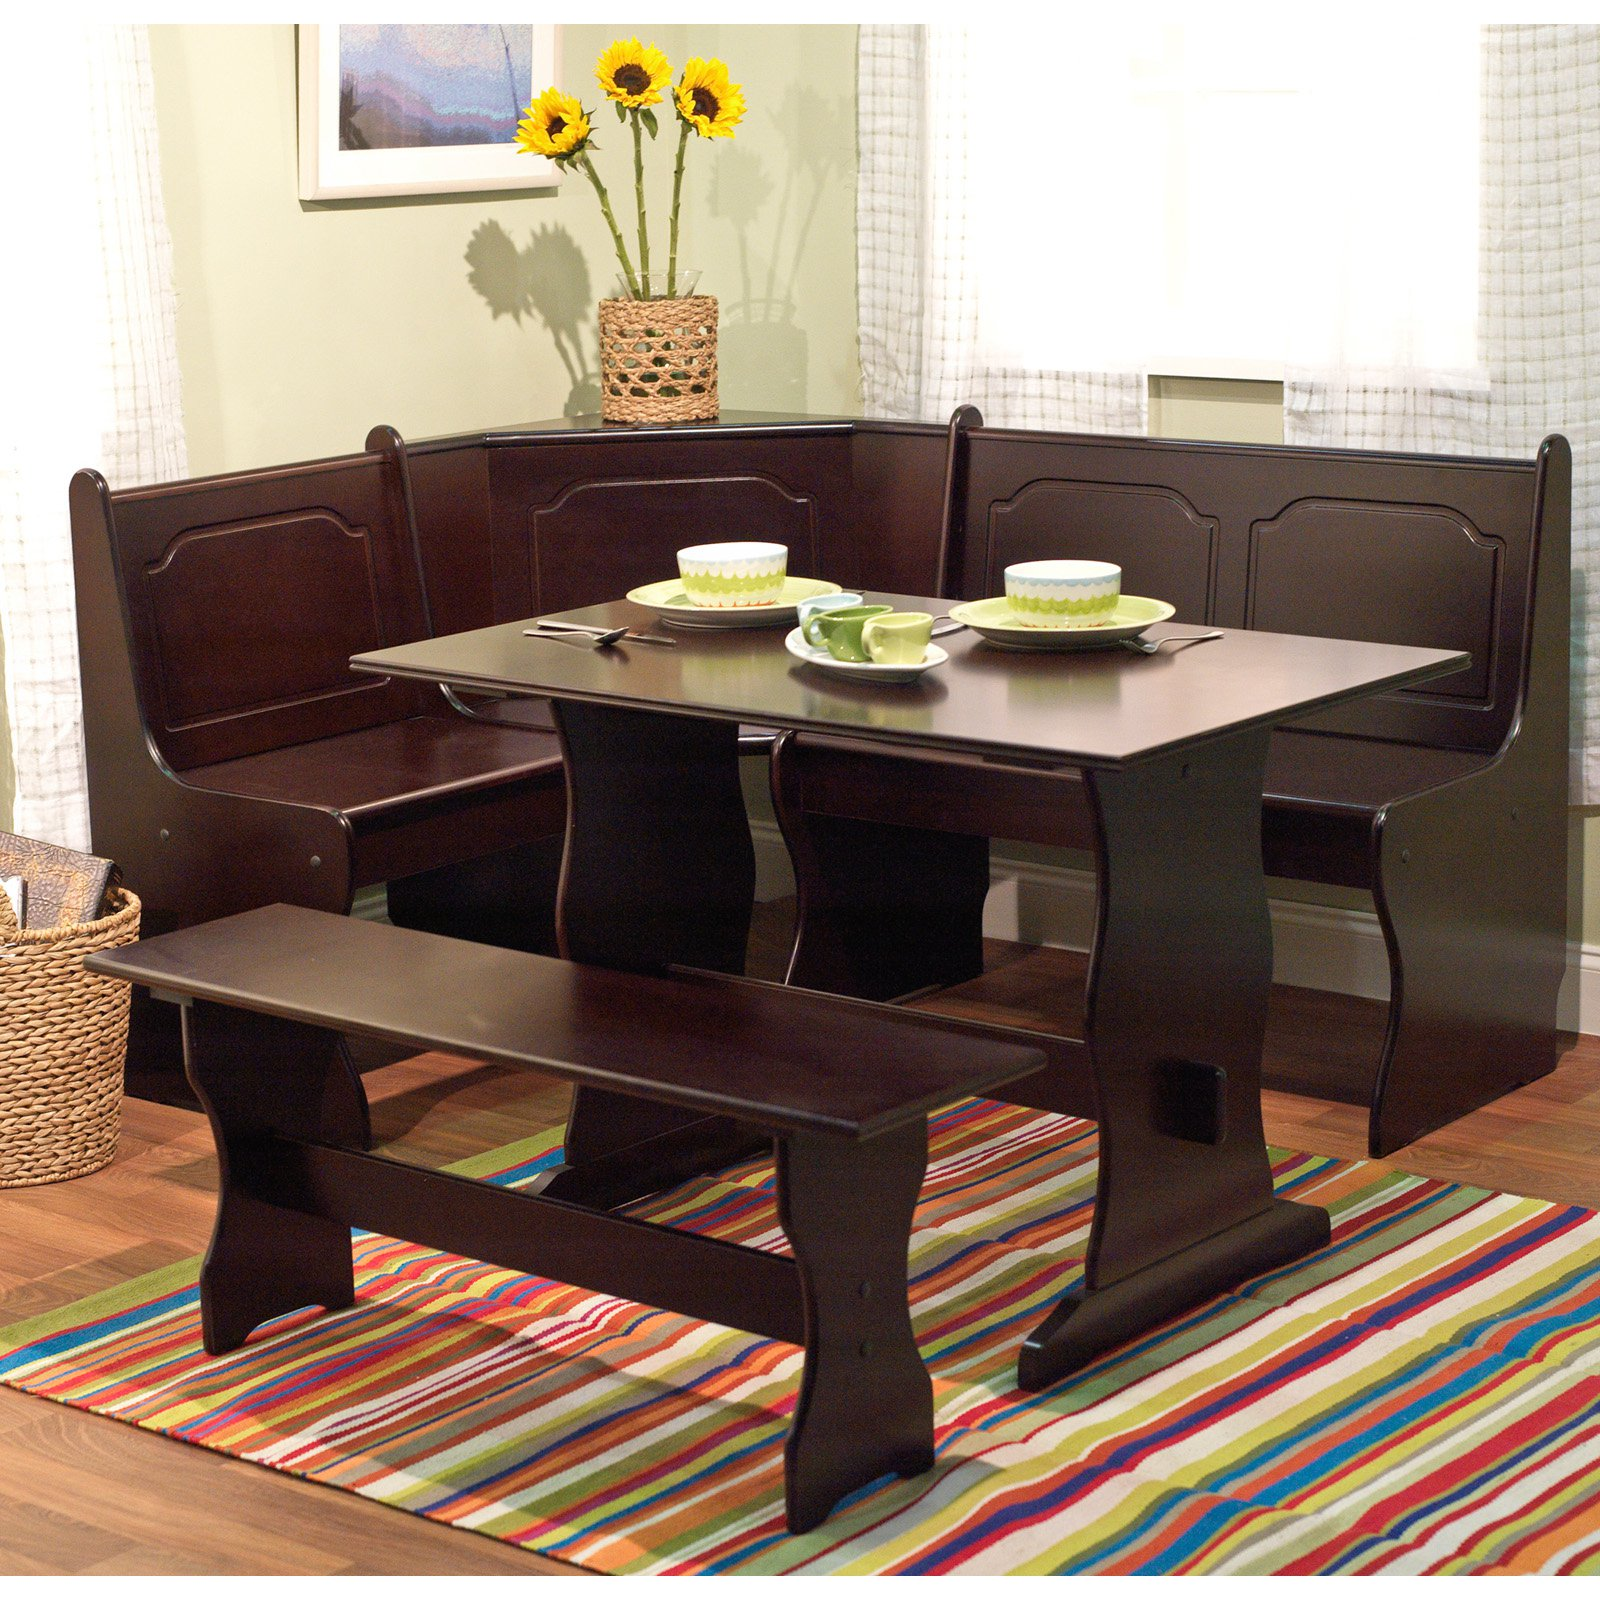 3 Piece Breakfast Nook Dining Set Corner Booth Bench Kitchen Table For 6 Person